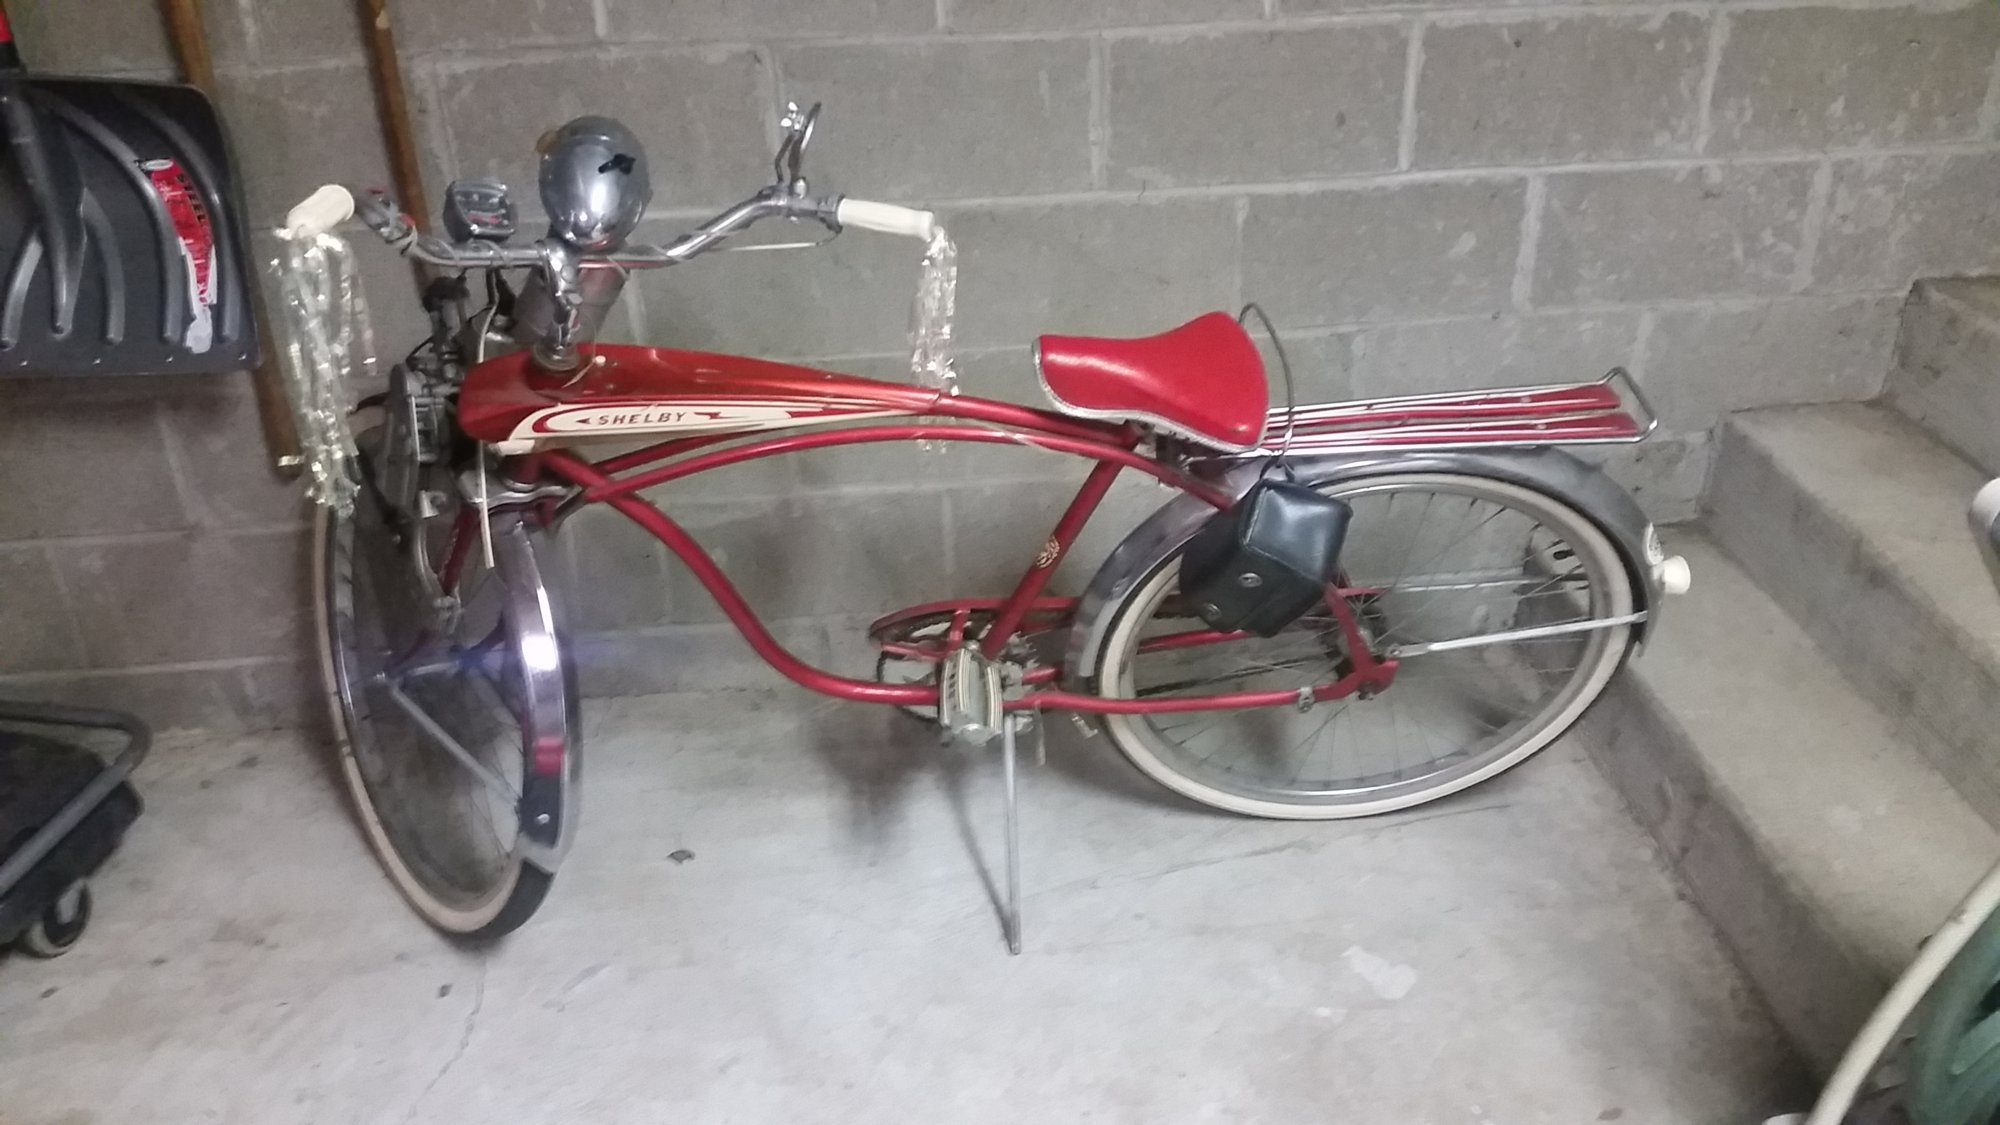 Help Identify Older Shelby bike with Orline Engine - can't find